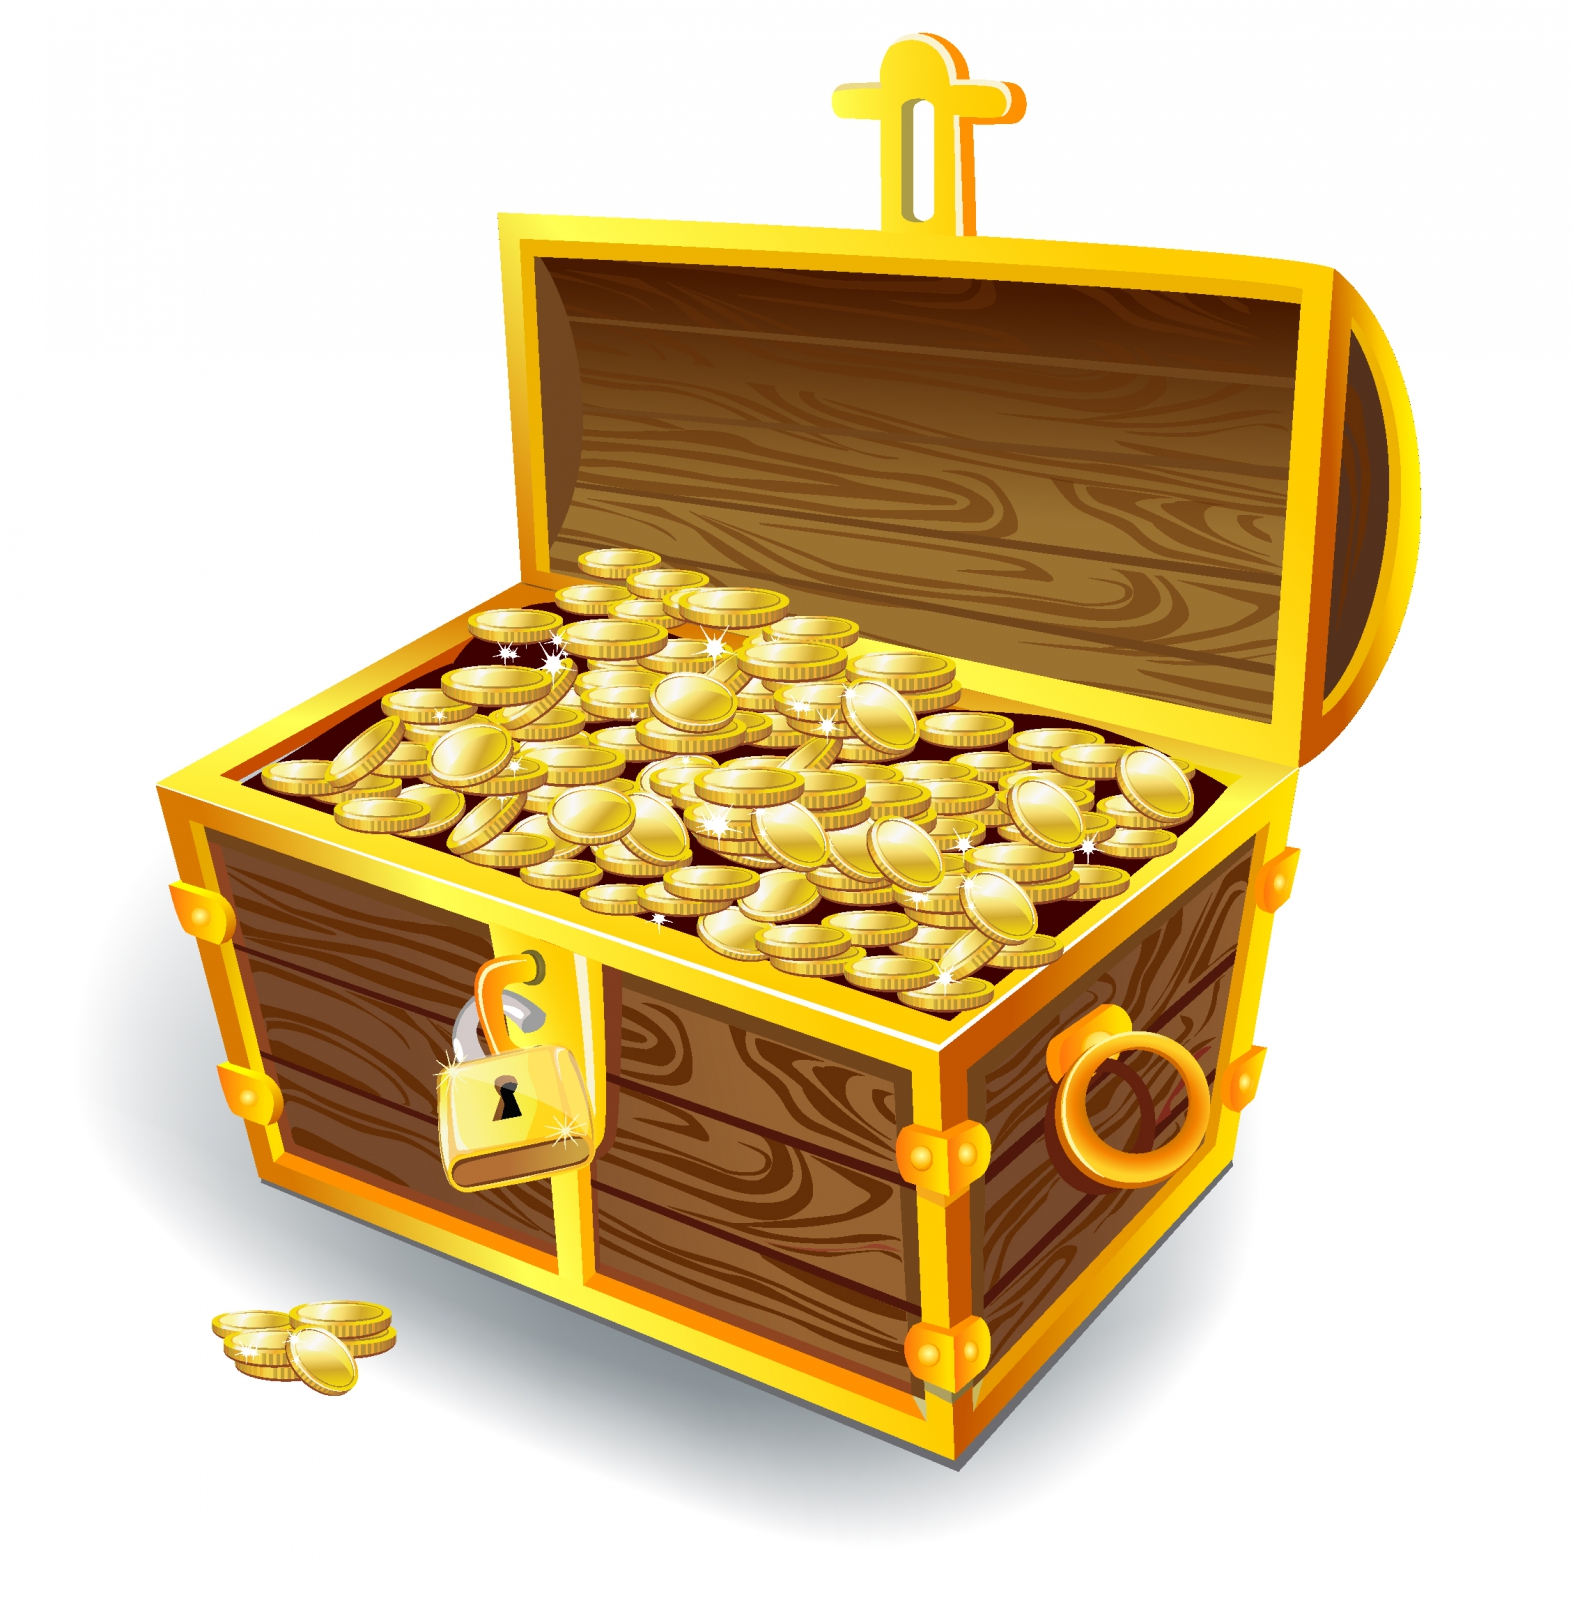 Open Treasure Box Clipart - Clipart Kid